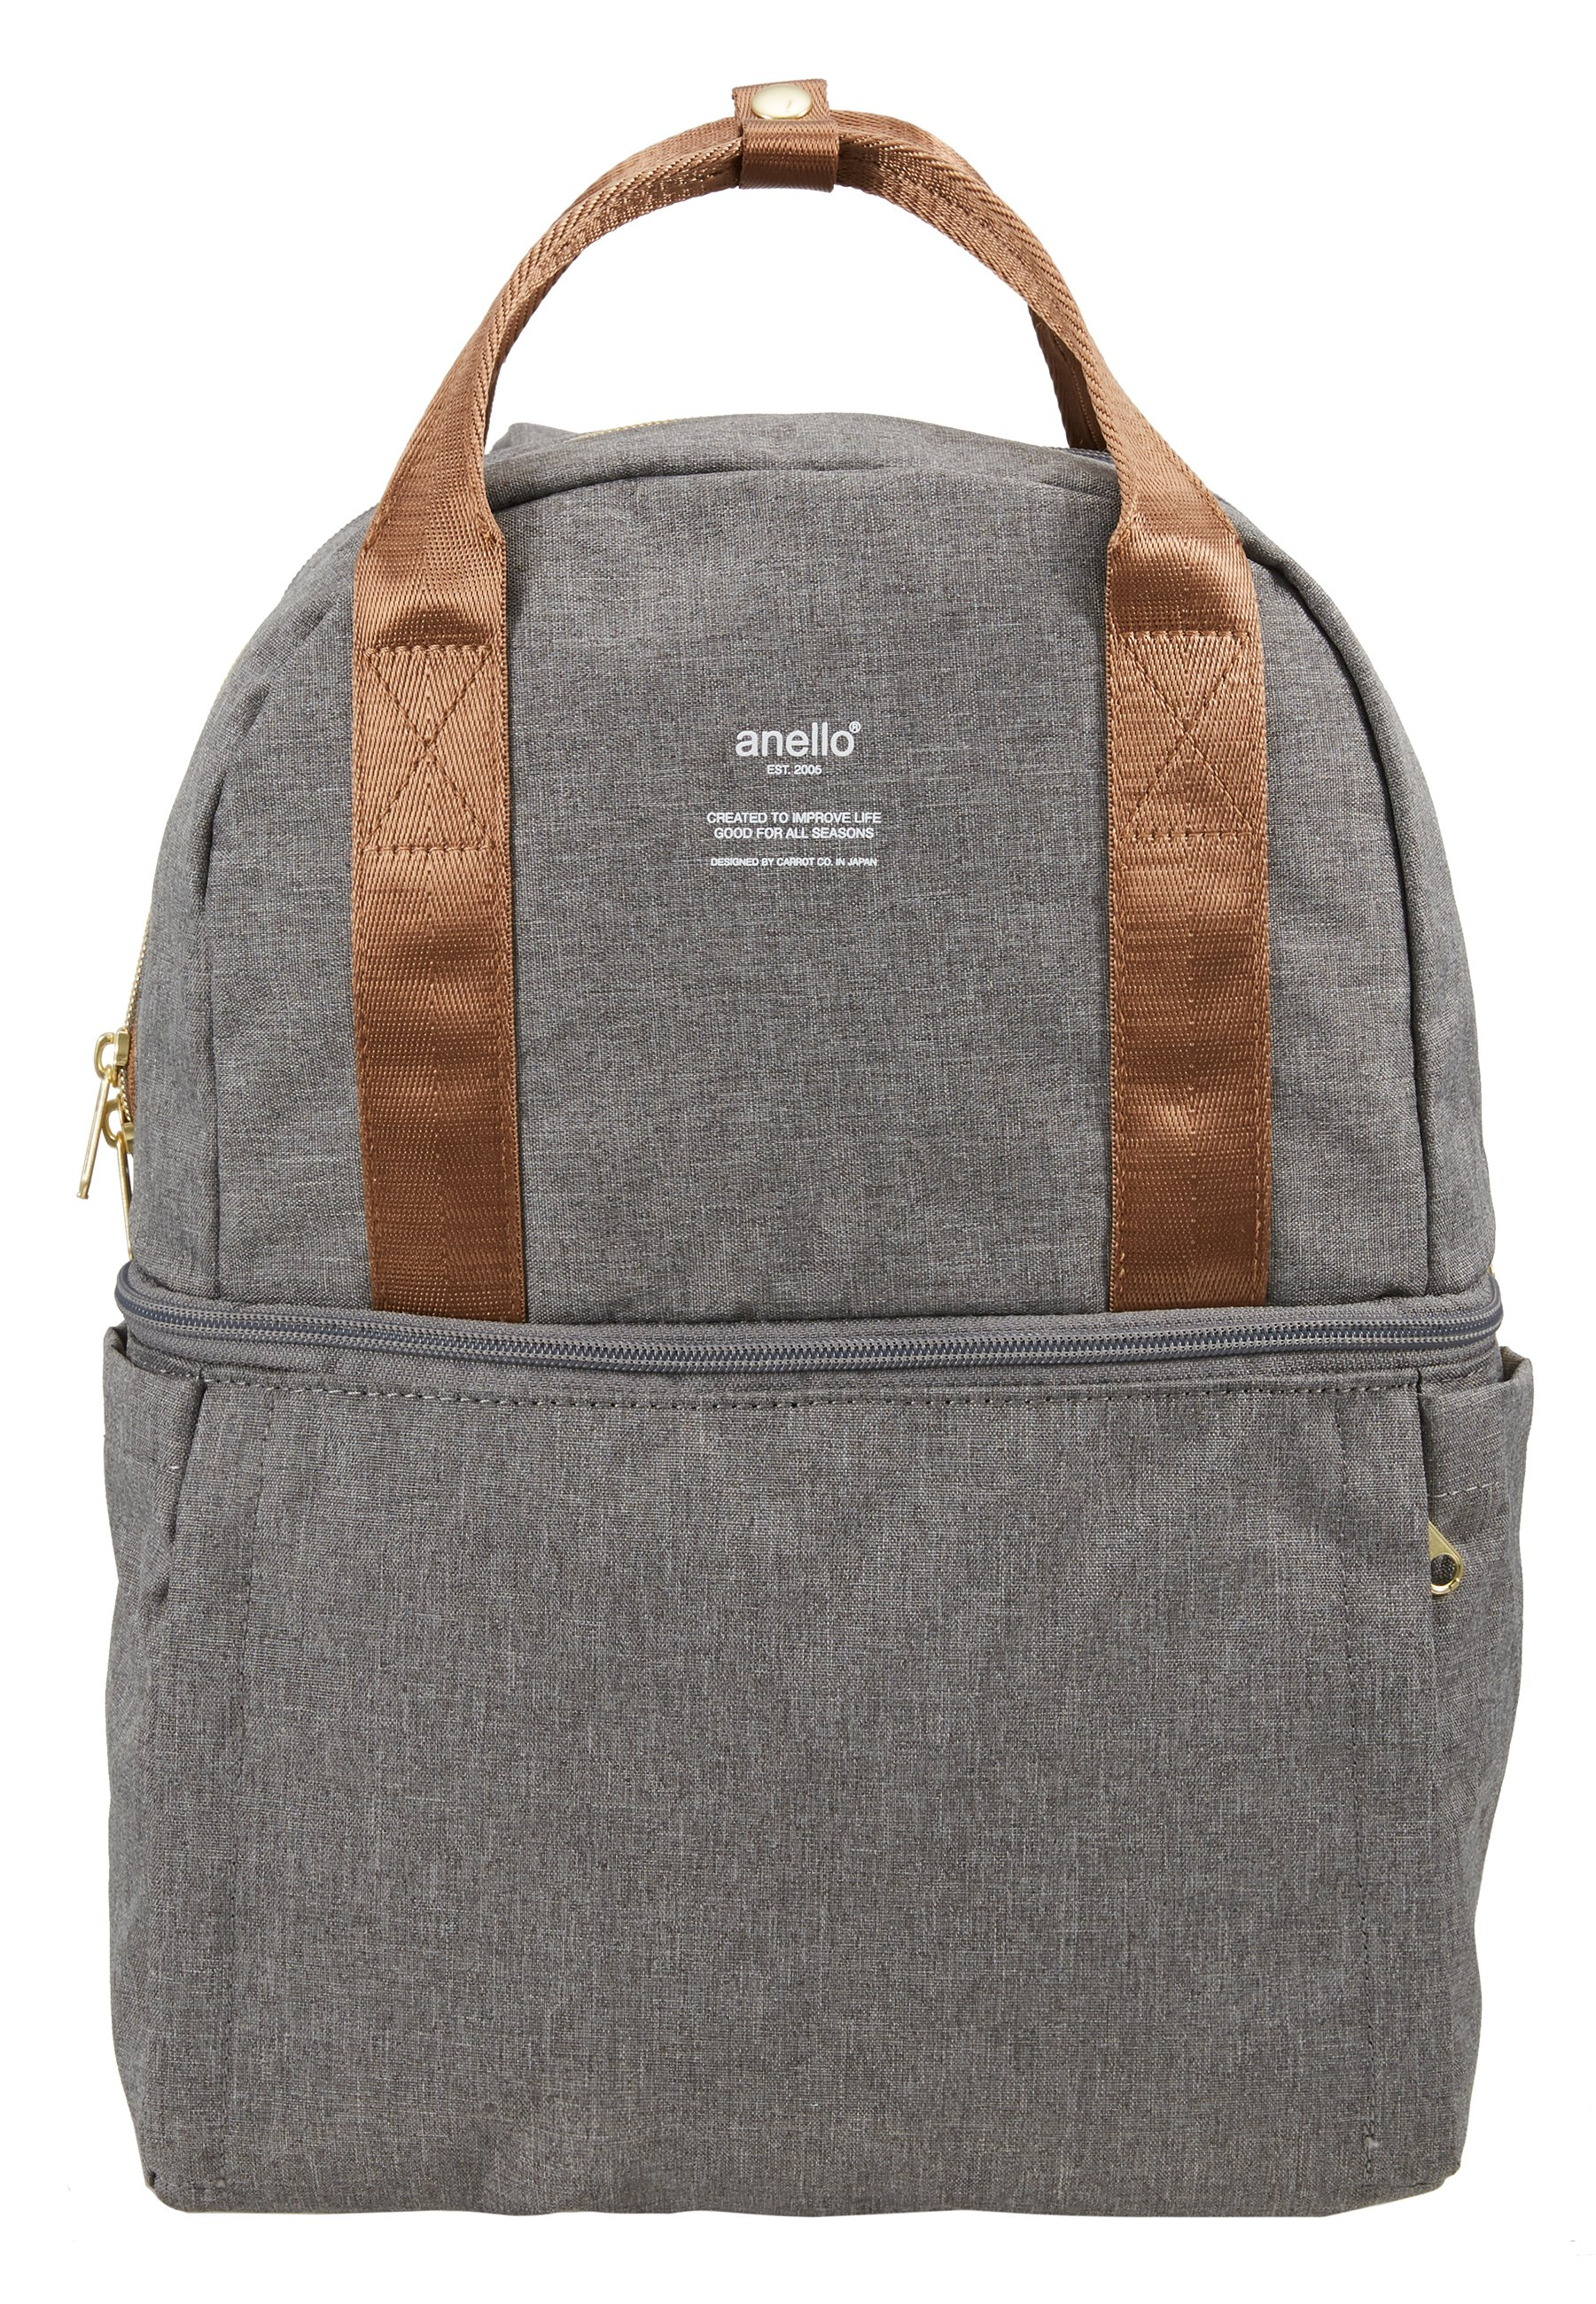 Anello Chubby Backpack - Rygsække Grey